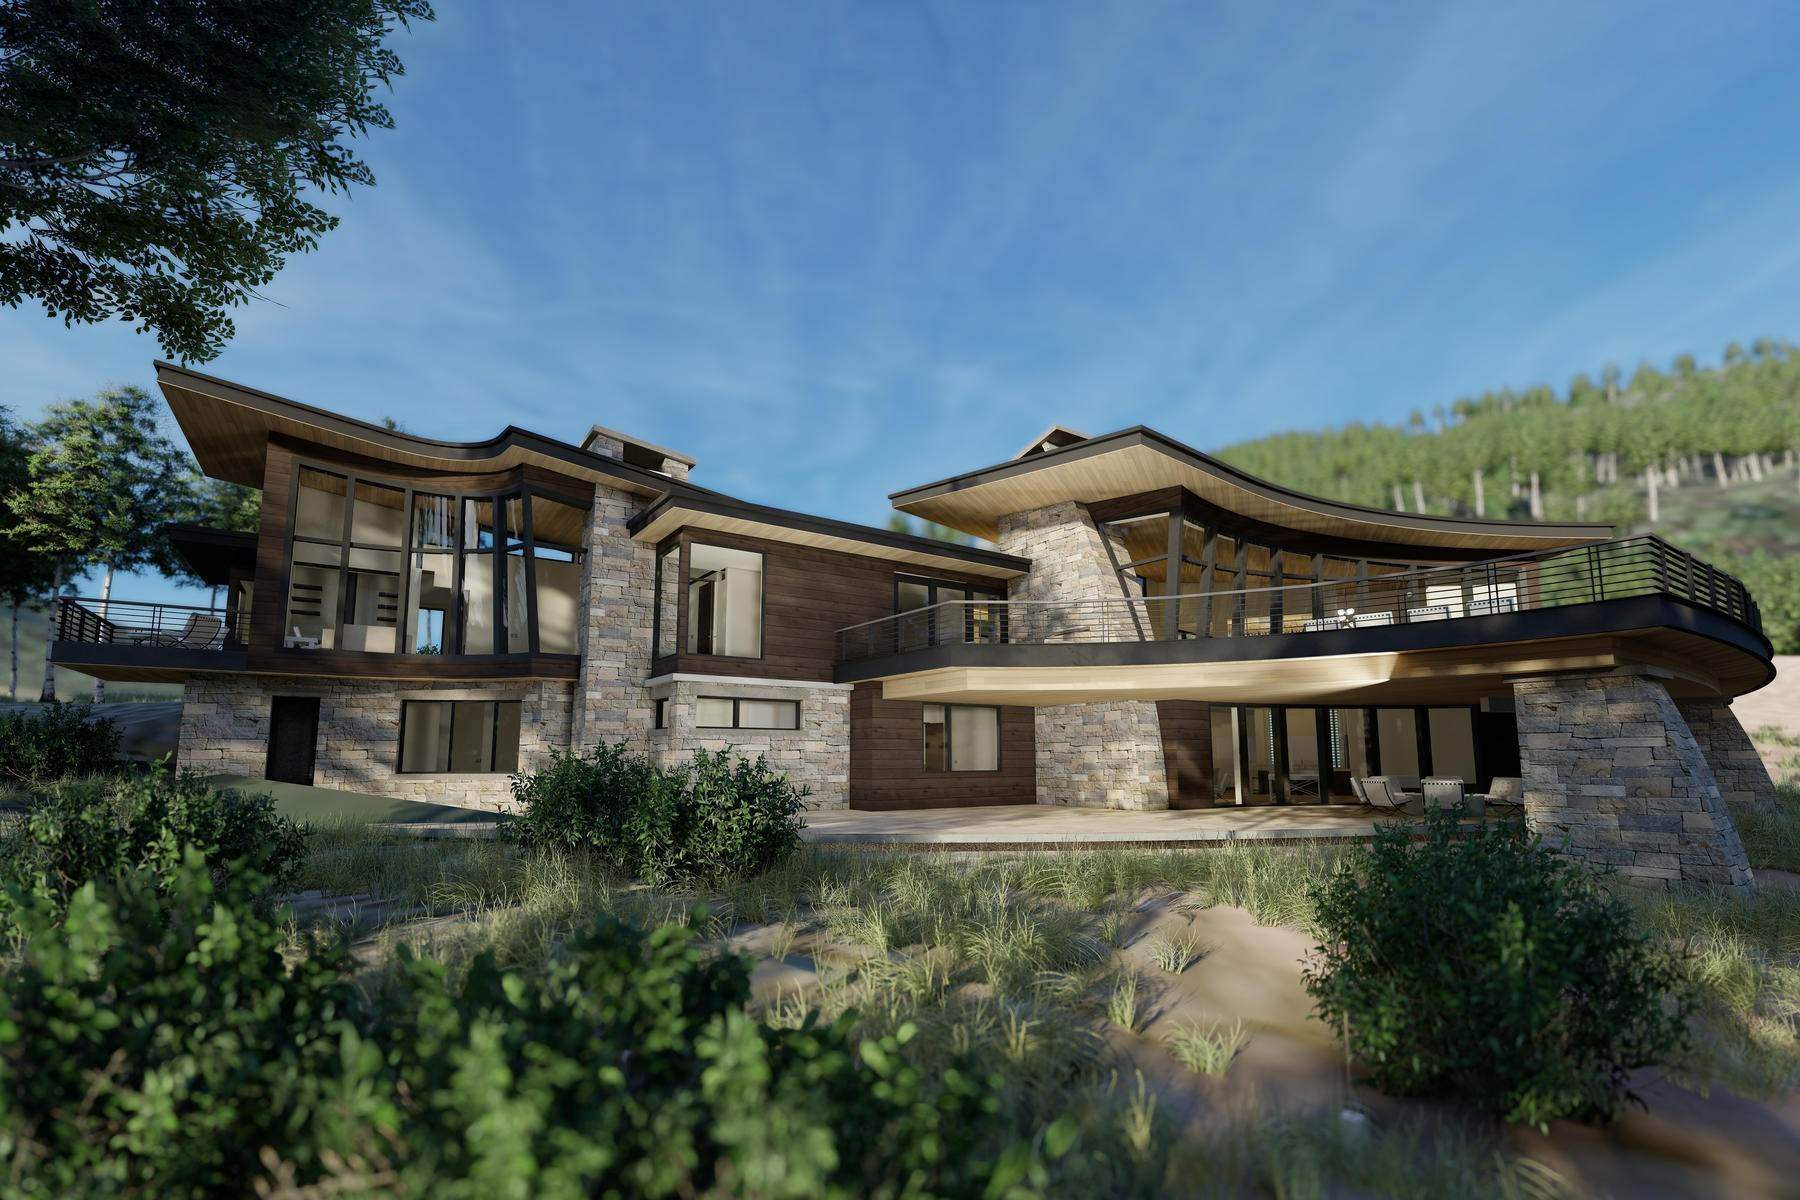 Single Family Homes for Sale at Luxury Has a New Address 256 White Pine Canyon Rd Park City, Utah 84060 United States